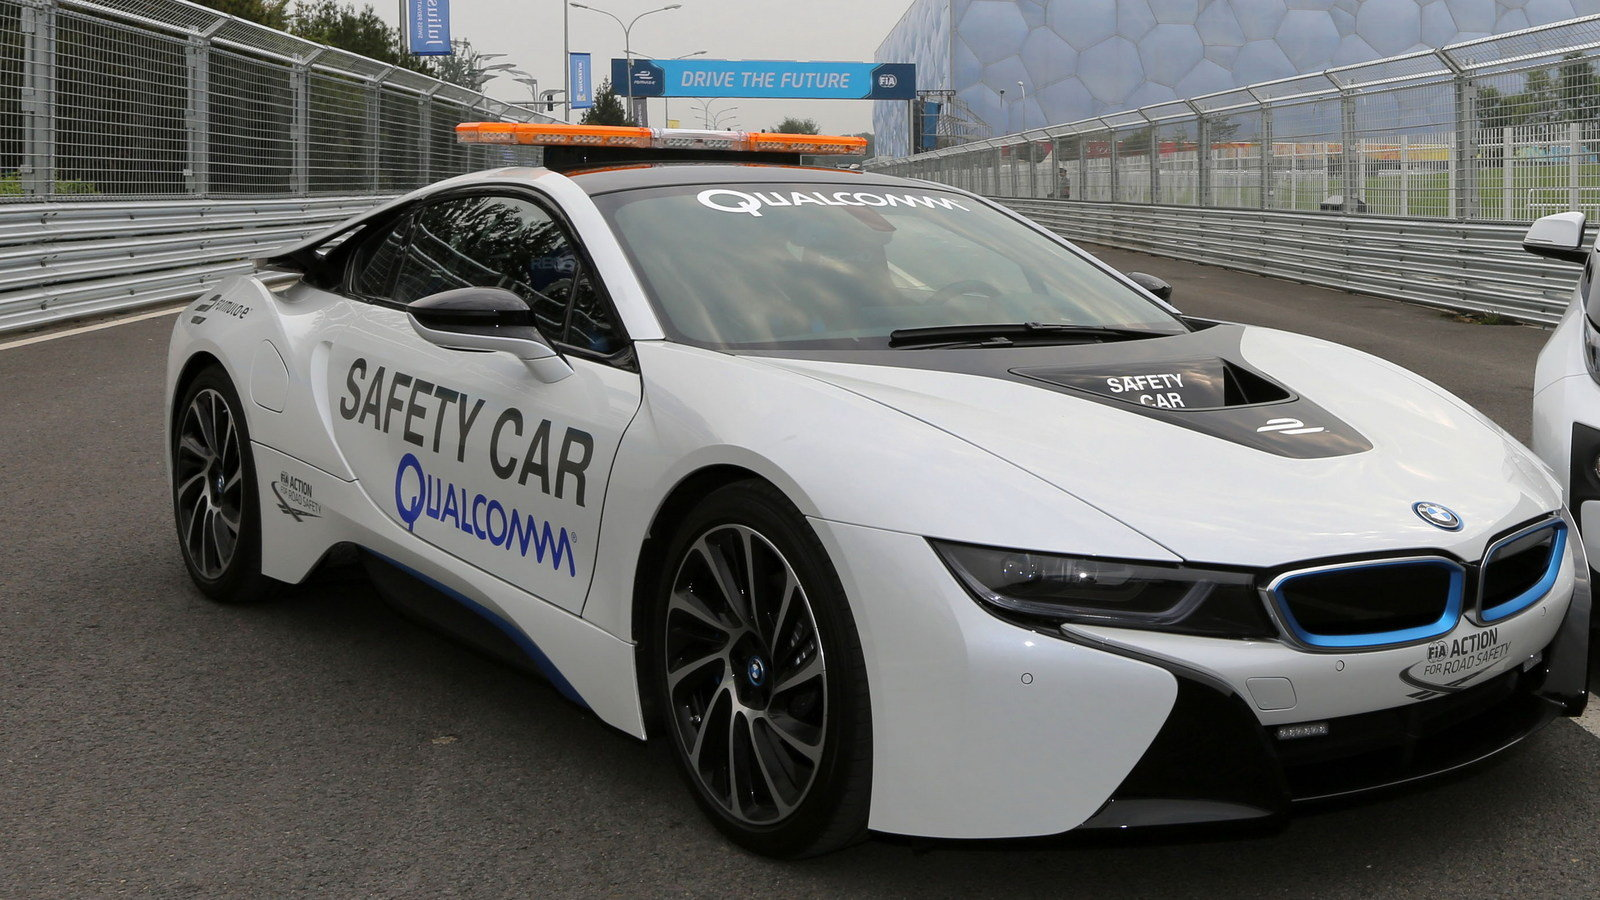 2015 bmw i8 safety car picture 568454 car review top. Black Bedroom Furniture Sets. Home Design Ideas